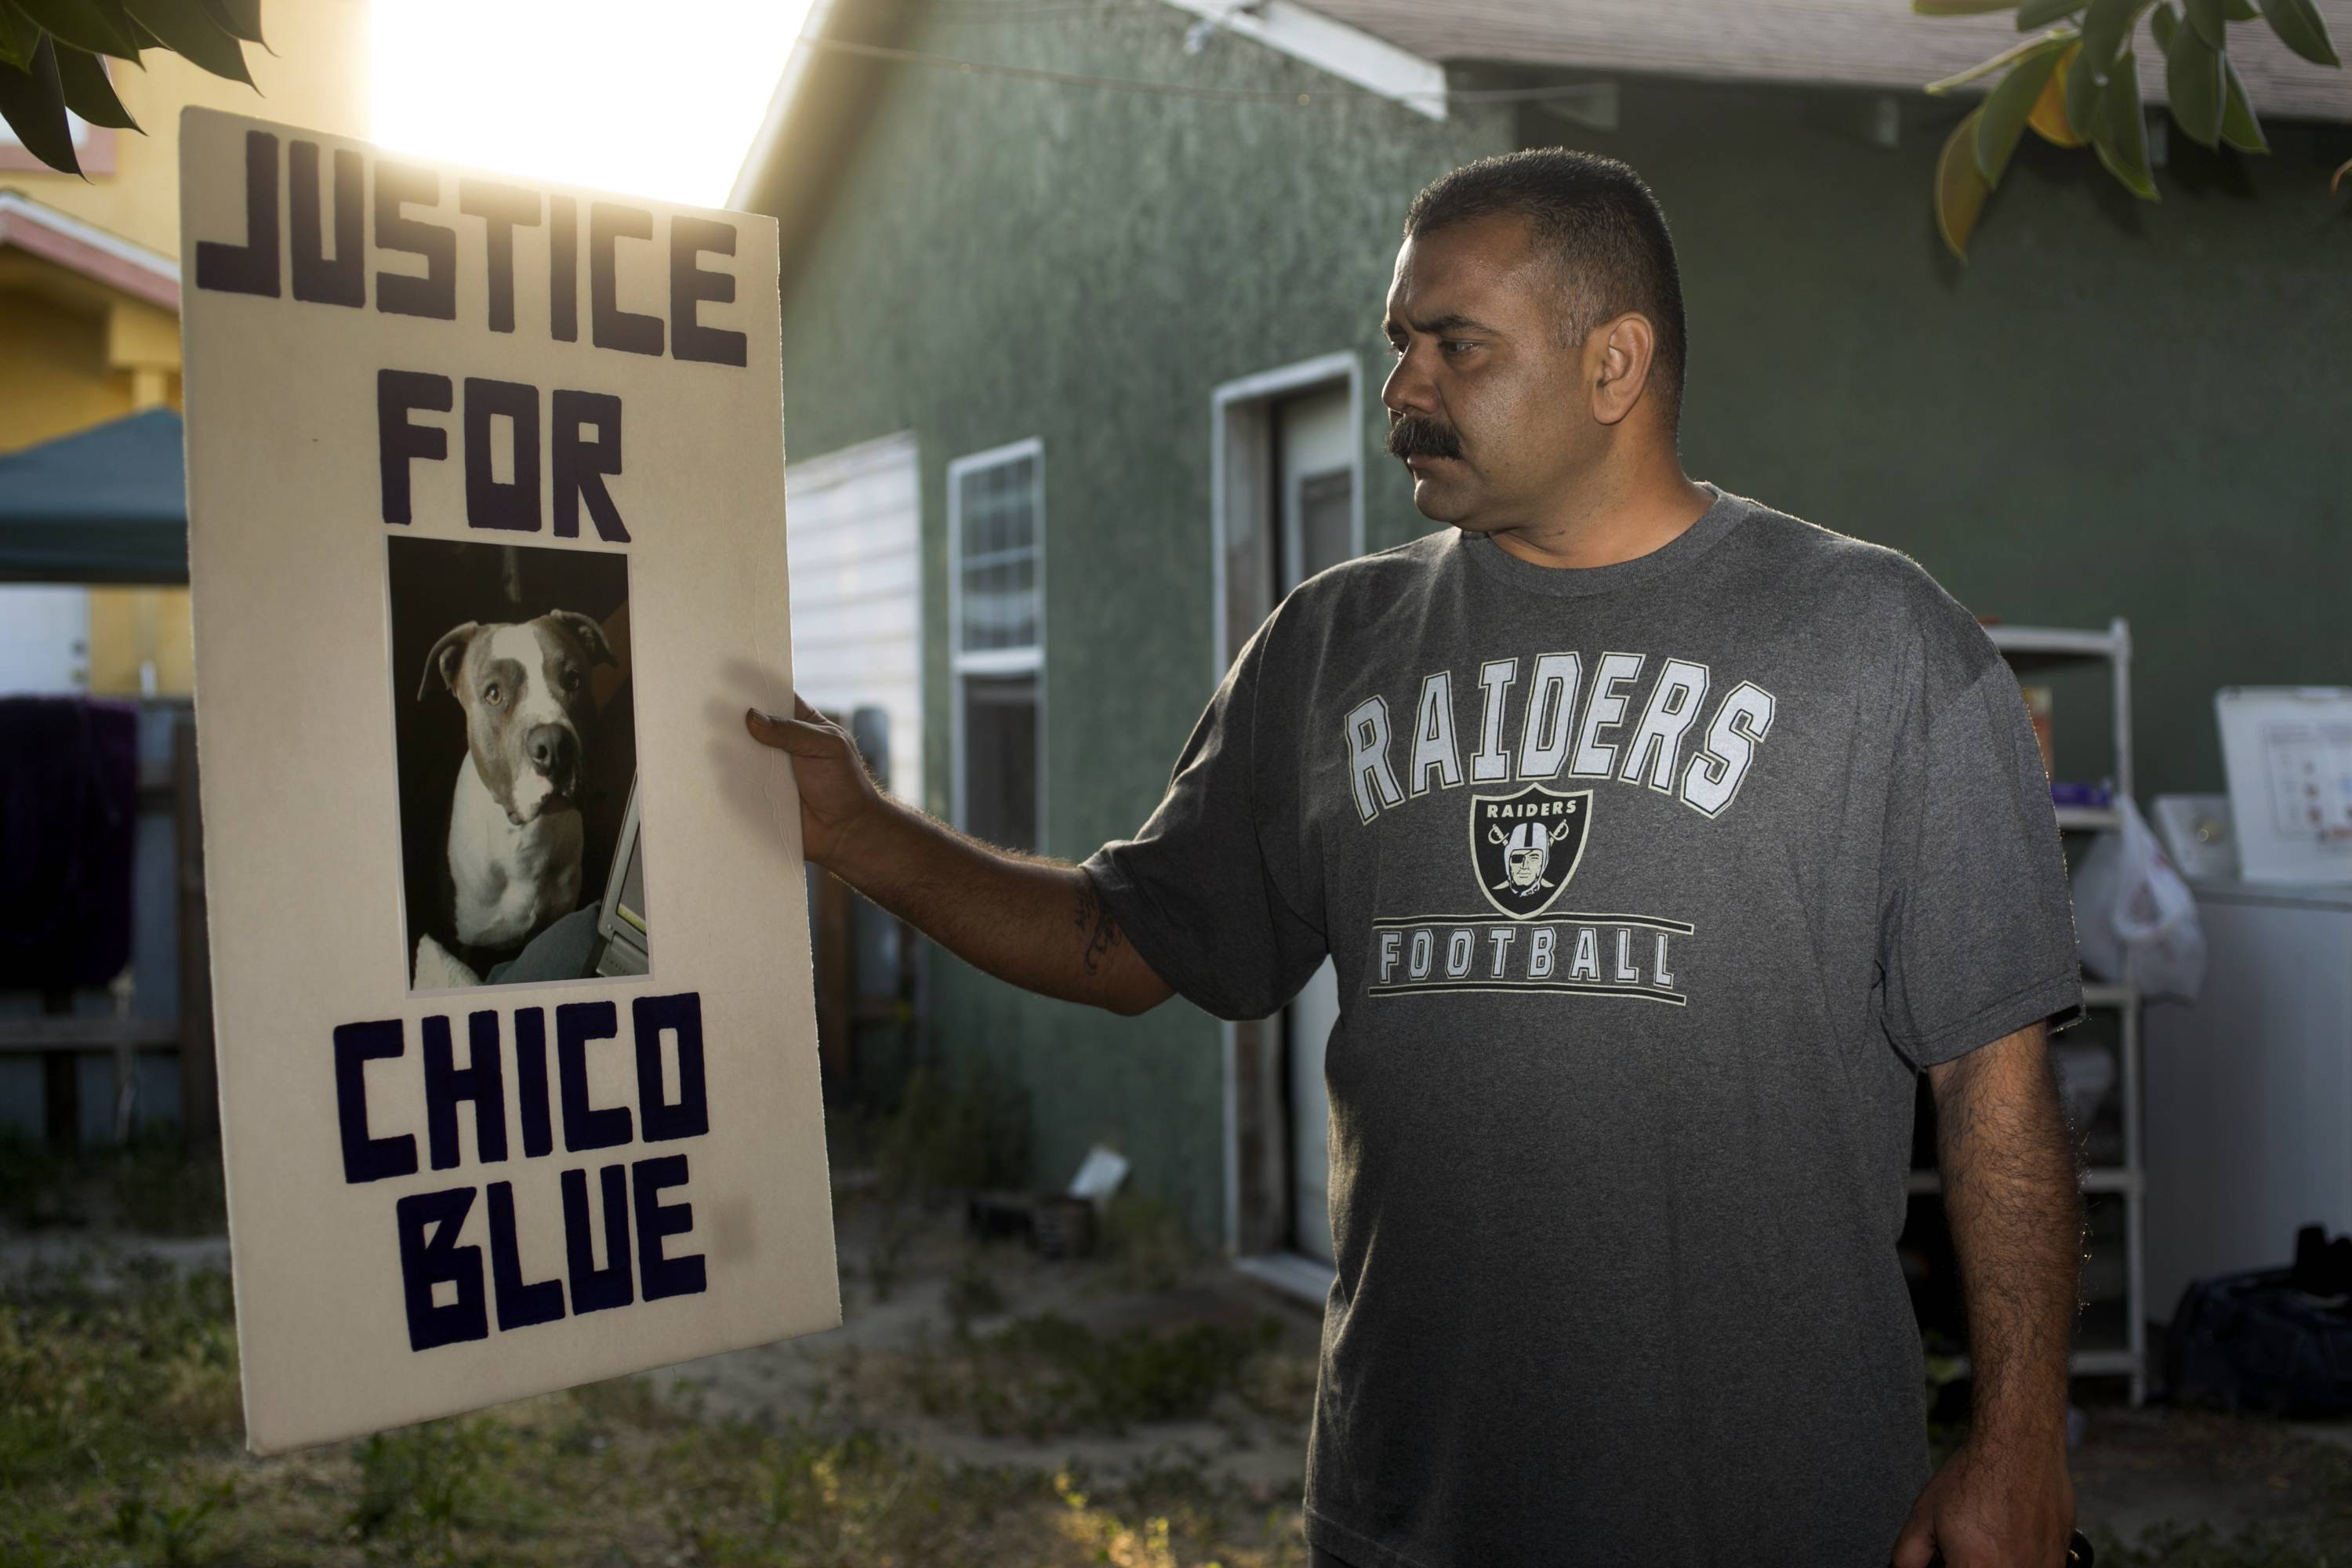 Former dog owner Arturo Gonzalez shows a photo with a picture of his late dog at his home in Pico Rivera, Calif. Gonzalez's pit bull, Chico Blue, was fatally shot by sheriff's deputies 18 months ago when the deputies came to ask Gonzalez about a shooting that wounded his brother. Feeling threatened by the dog, the deputies threw a chair, sprayed the dog with mace and shot him twice with a handgun.